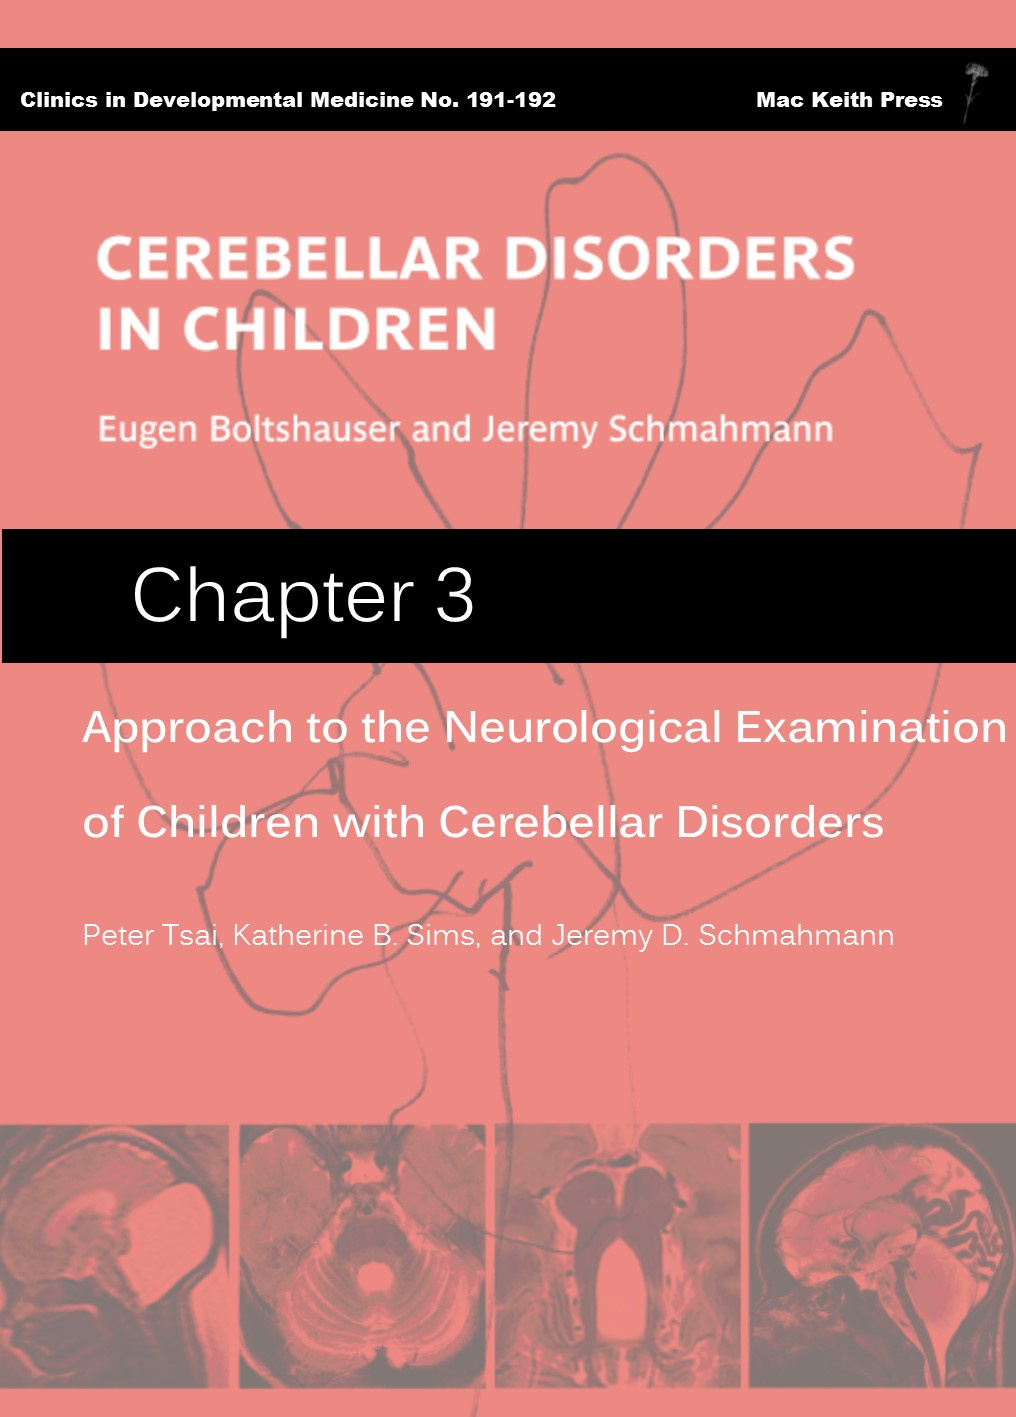 Approach to the Neurological Examination of Children with Cerebellar Disorders (chapter 3) - Cerebellar Disorders in Children COVER IMAGE